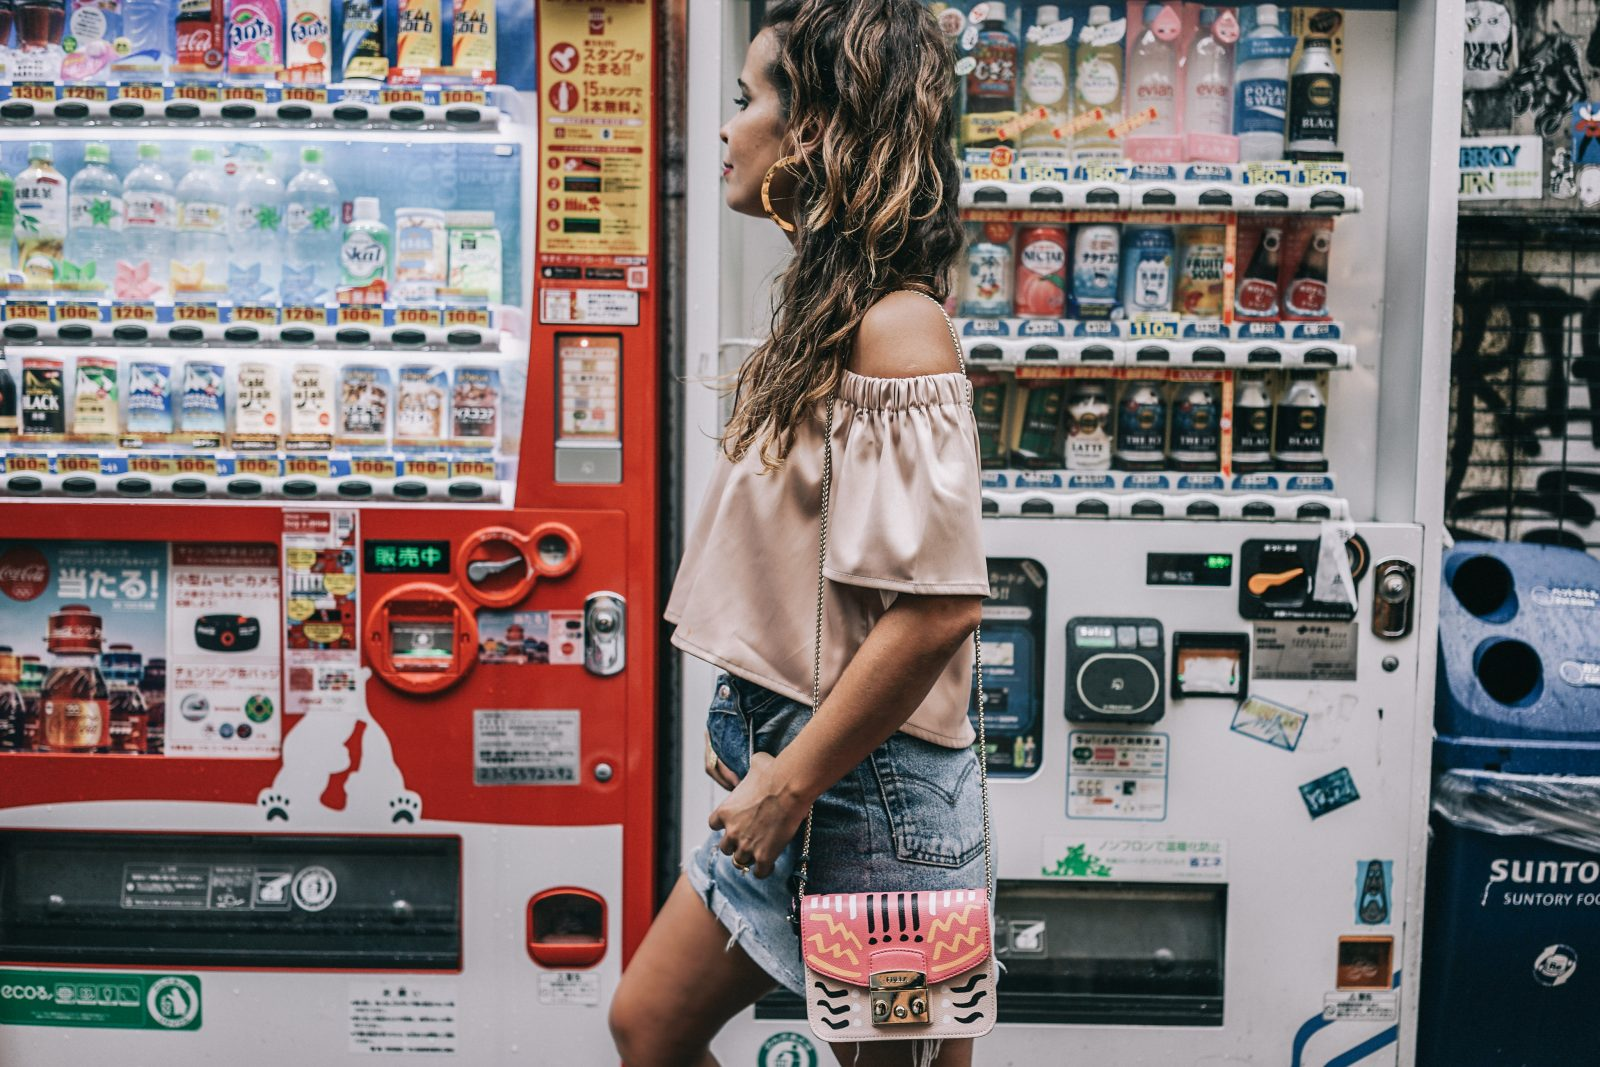 Tokyo_Travel_Guide-Fish_Market-Harajuku-Levis_Denim_Skirt-Off_The_Shoulders_Top-YSL_Sneakers-Outfit-Collage_Vintage-Street_Style-121